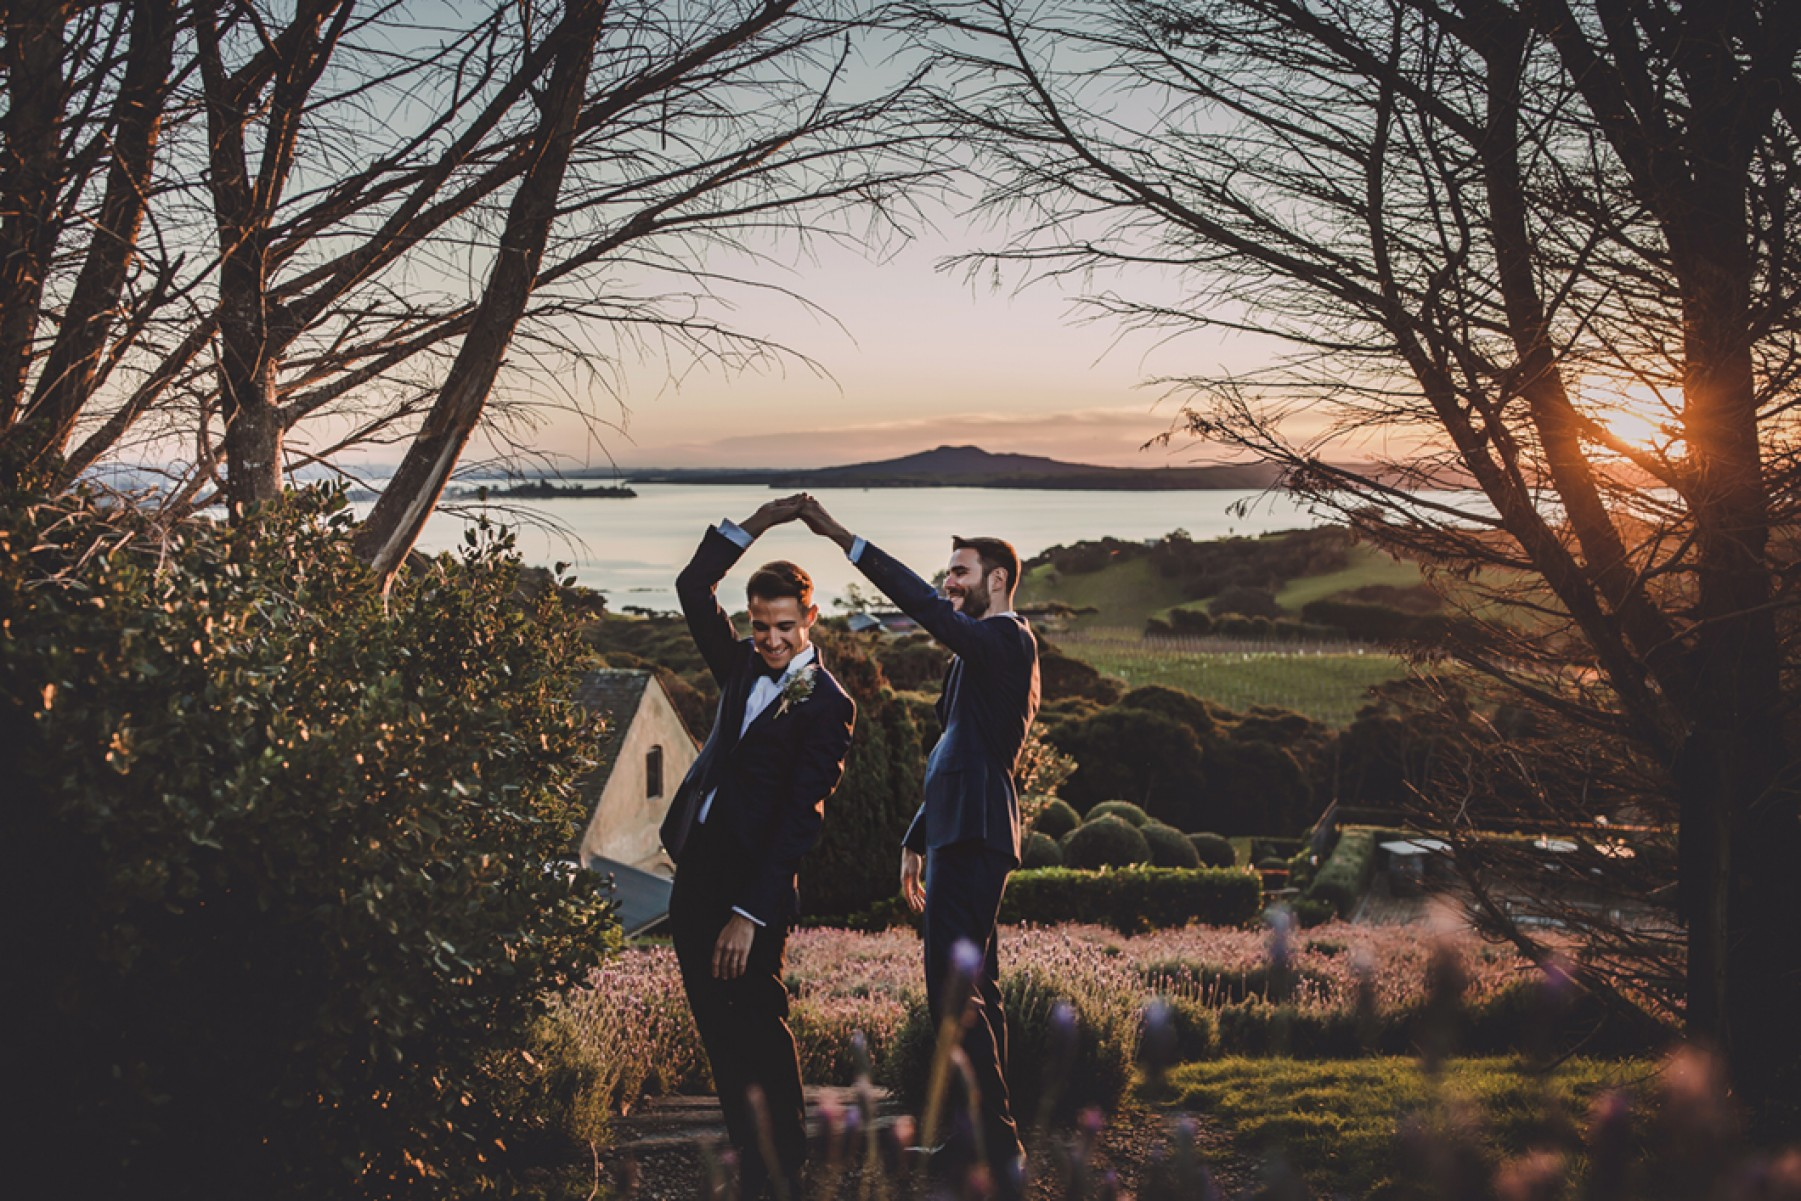 Golden Hour - The Best Time of Day for Wedding Photos